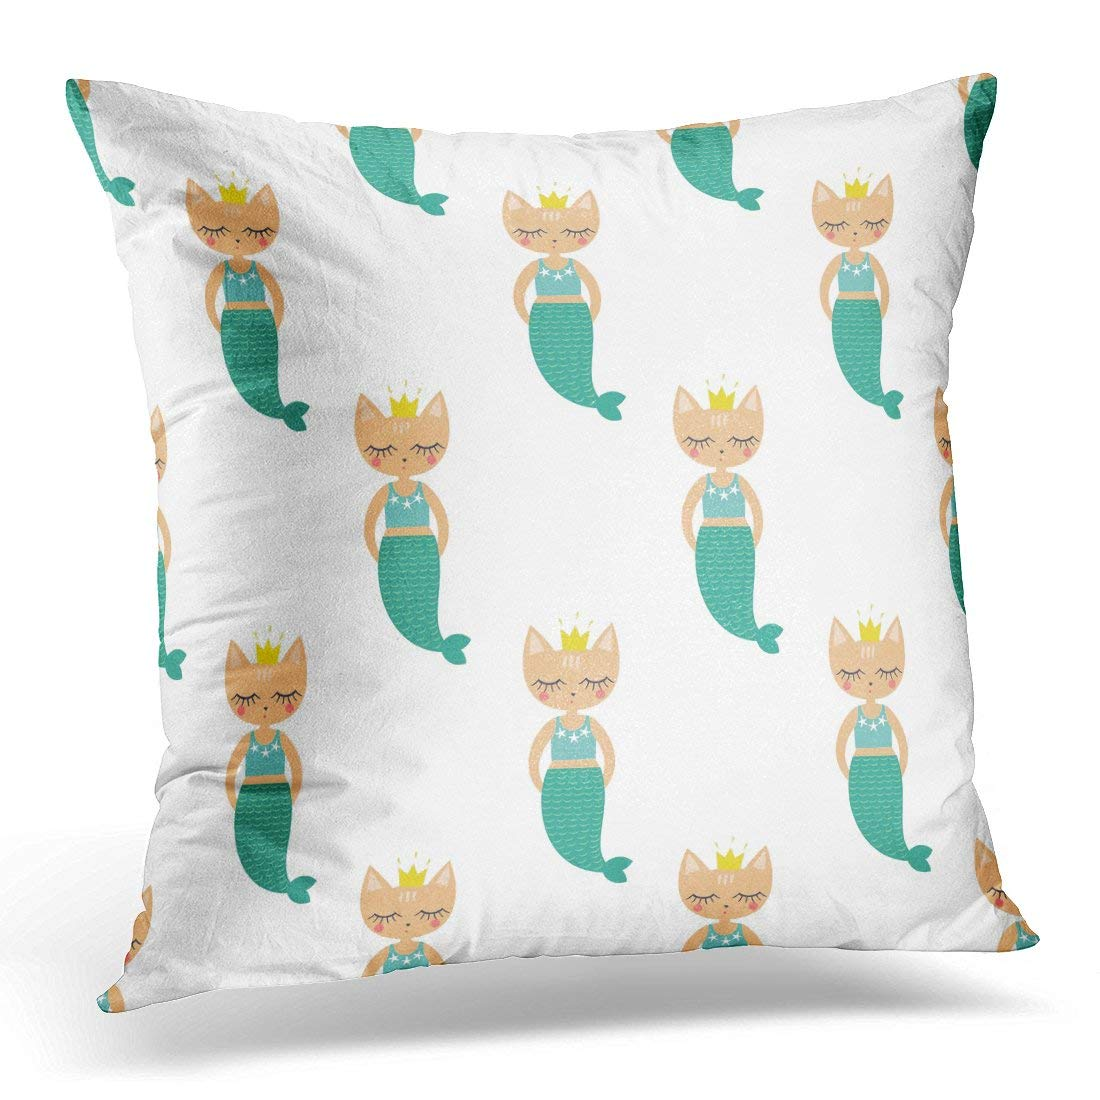 CMFUN Creatures Mermaid Kitten on White Sea Child Drawing Style Cartoon Cat Design Kitty Pillow Case Pillow Cover 20x20 inch